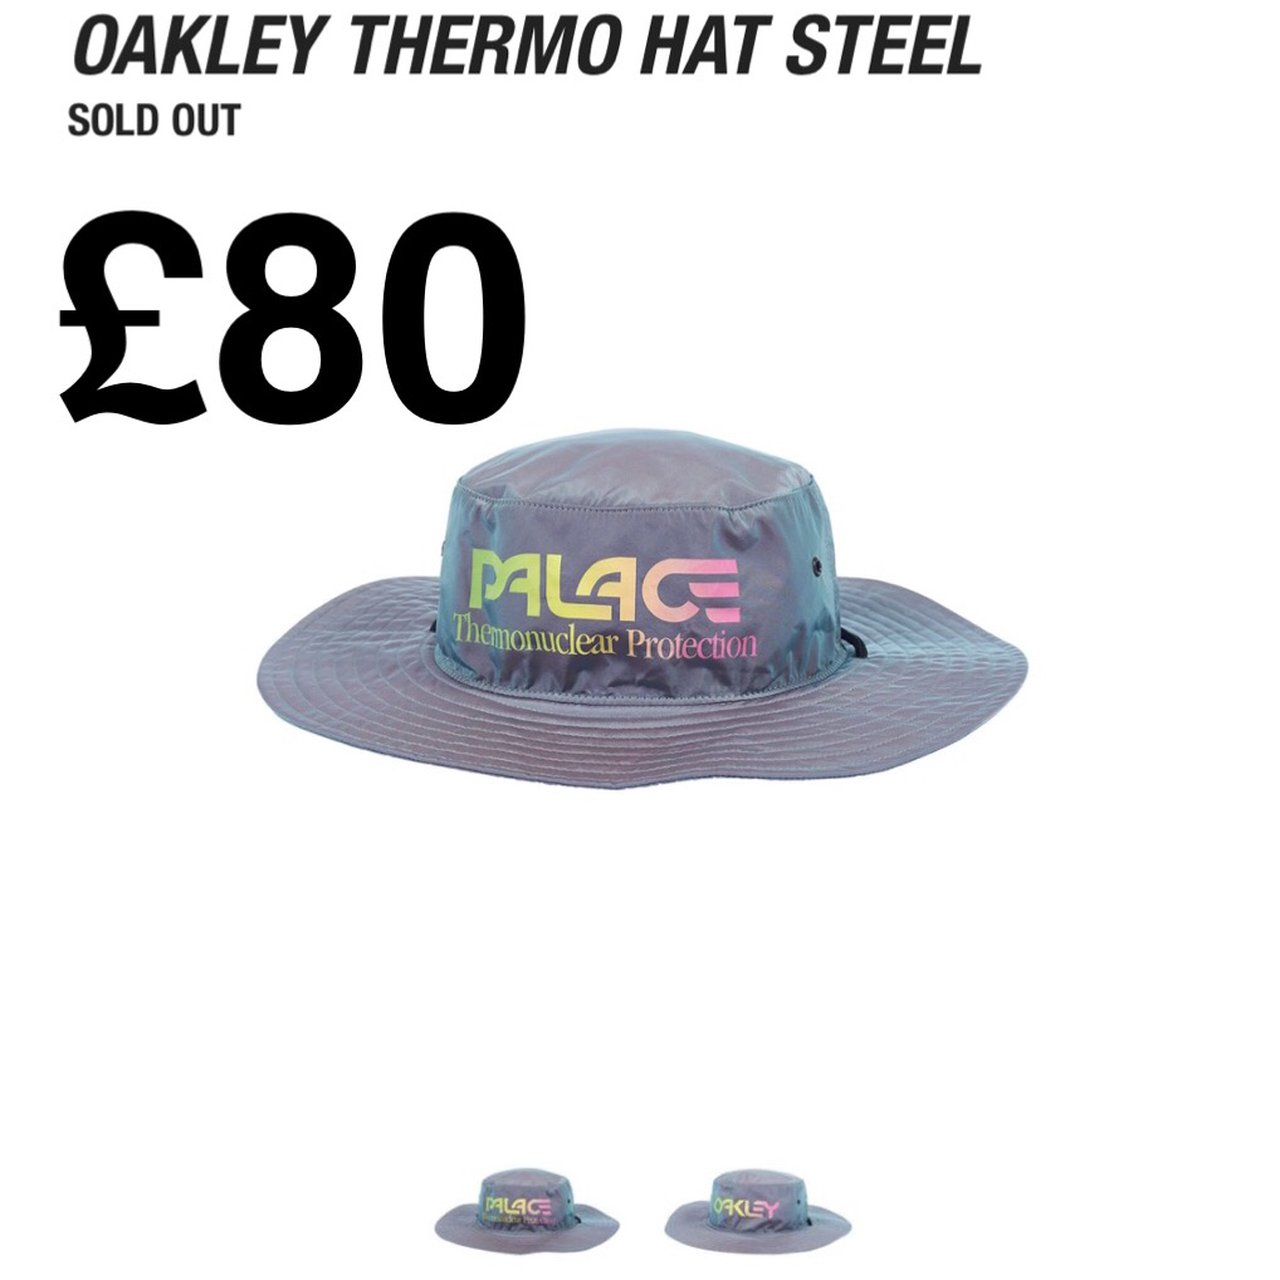 71ca7791 PALACE X OAKLEY THERMO HAT STEEL GREY - Depop